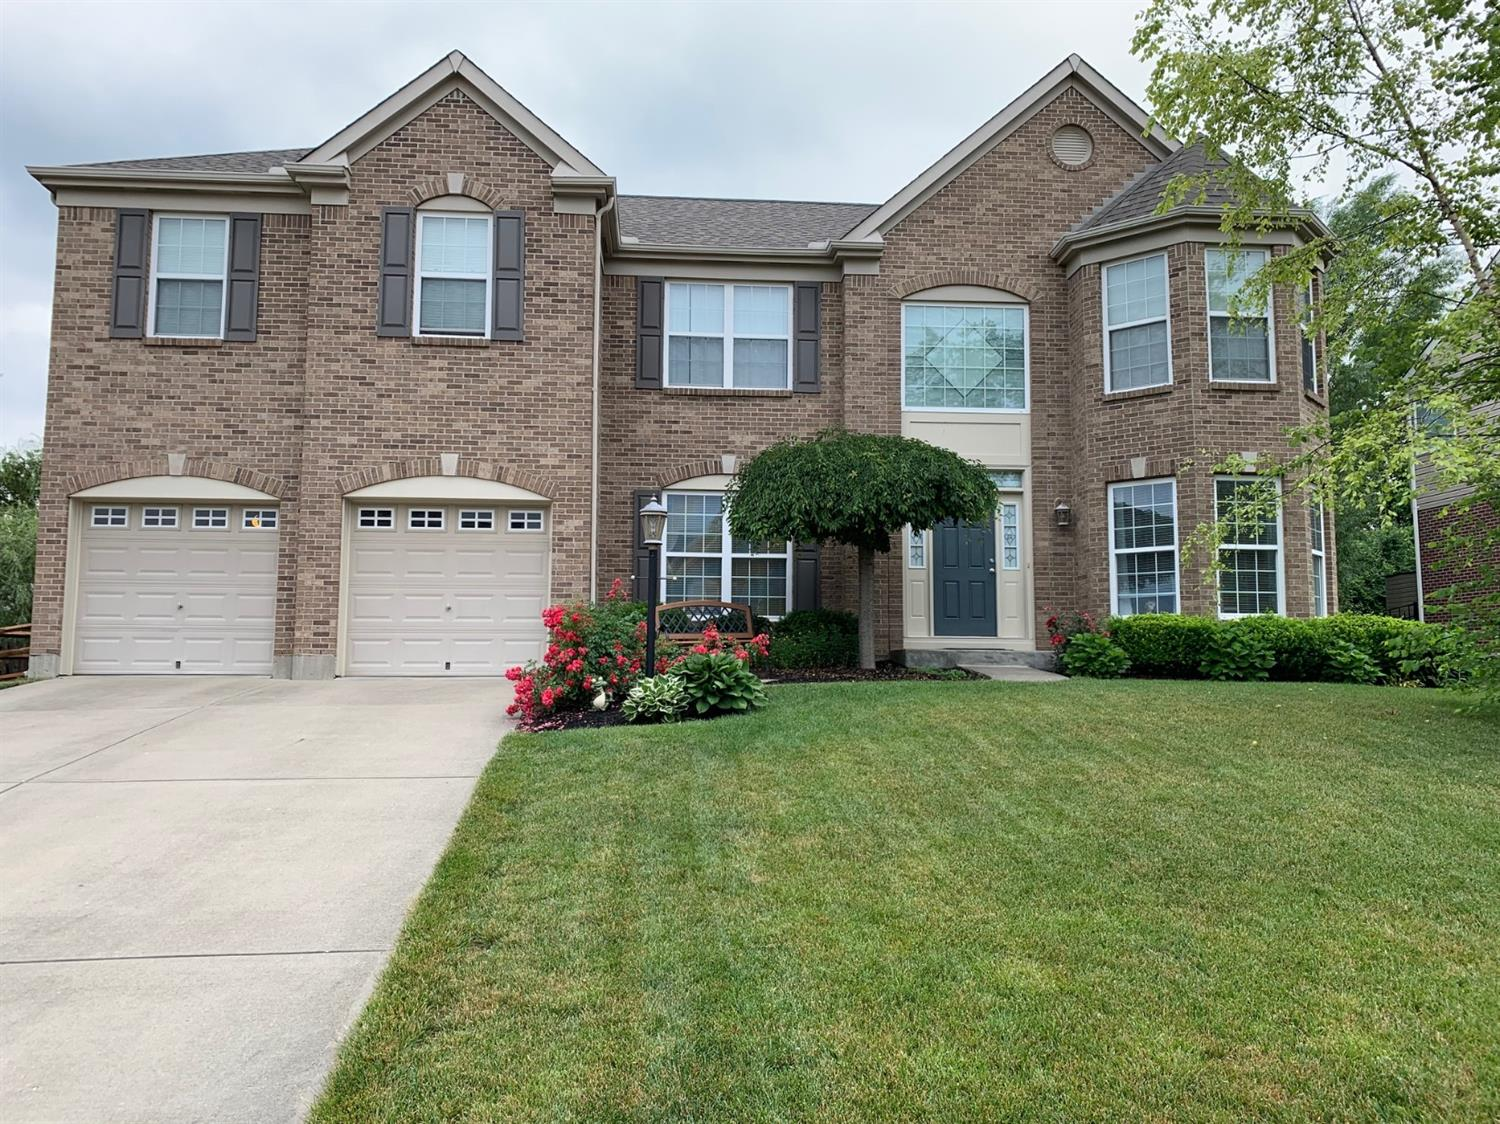 8293 Cherrydale Ct Deerfield Twp. OH